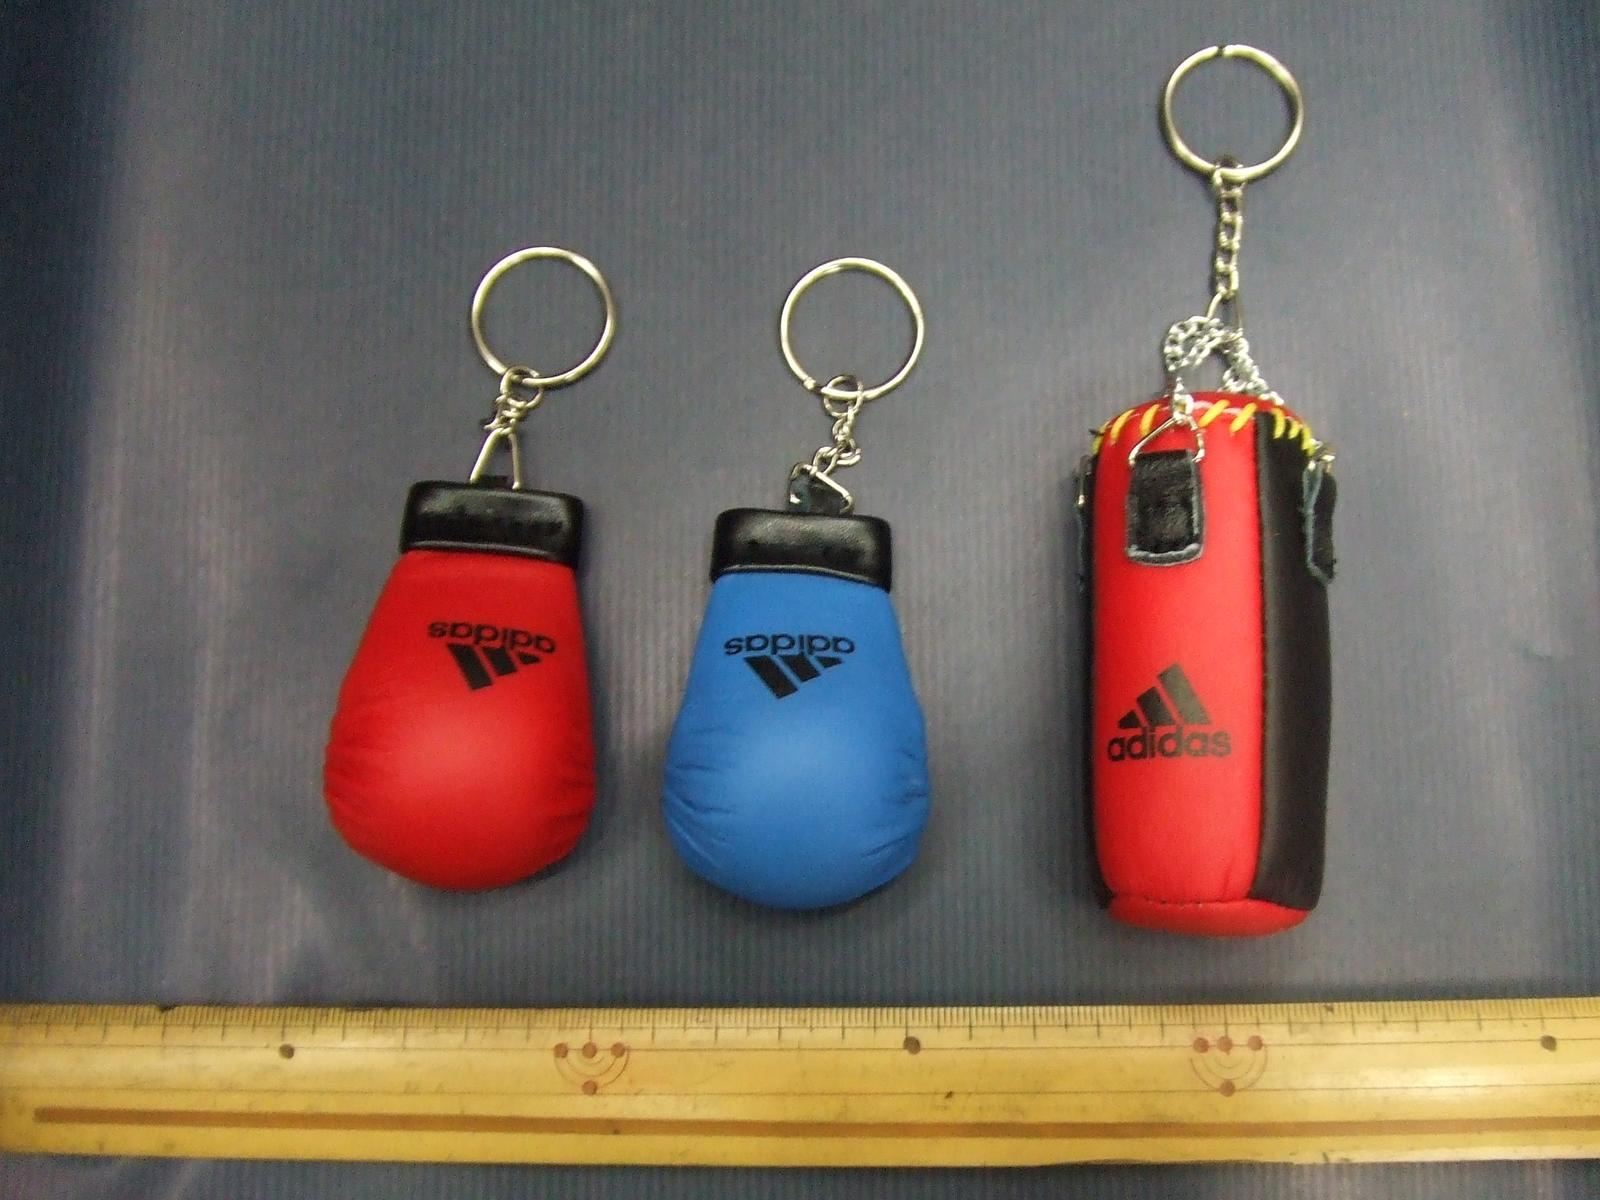 adidas mascot fist supporter (empty-handed key ring)